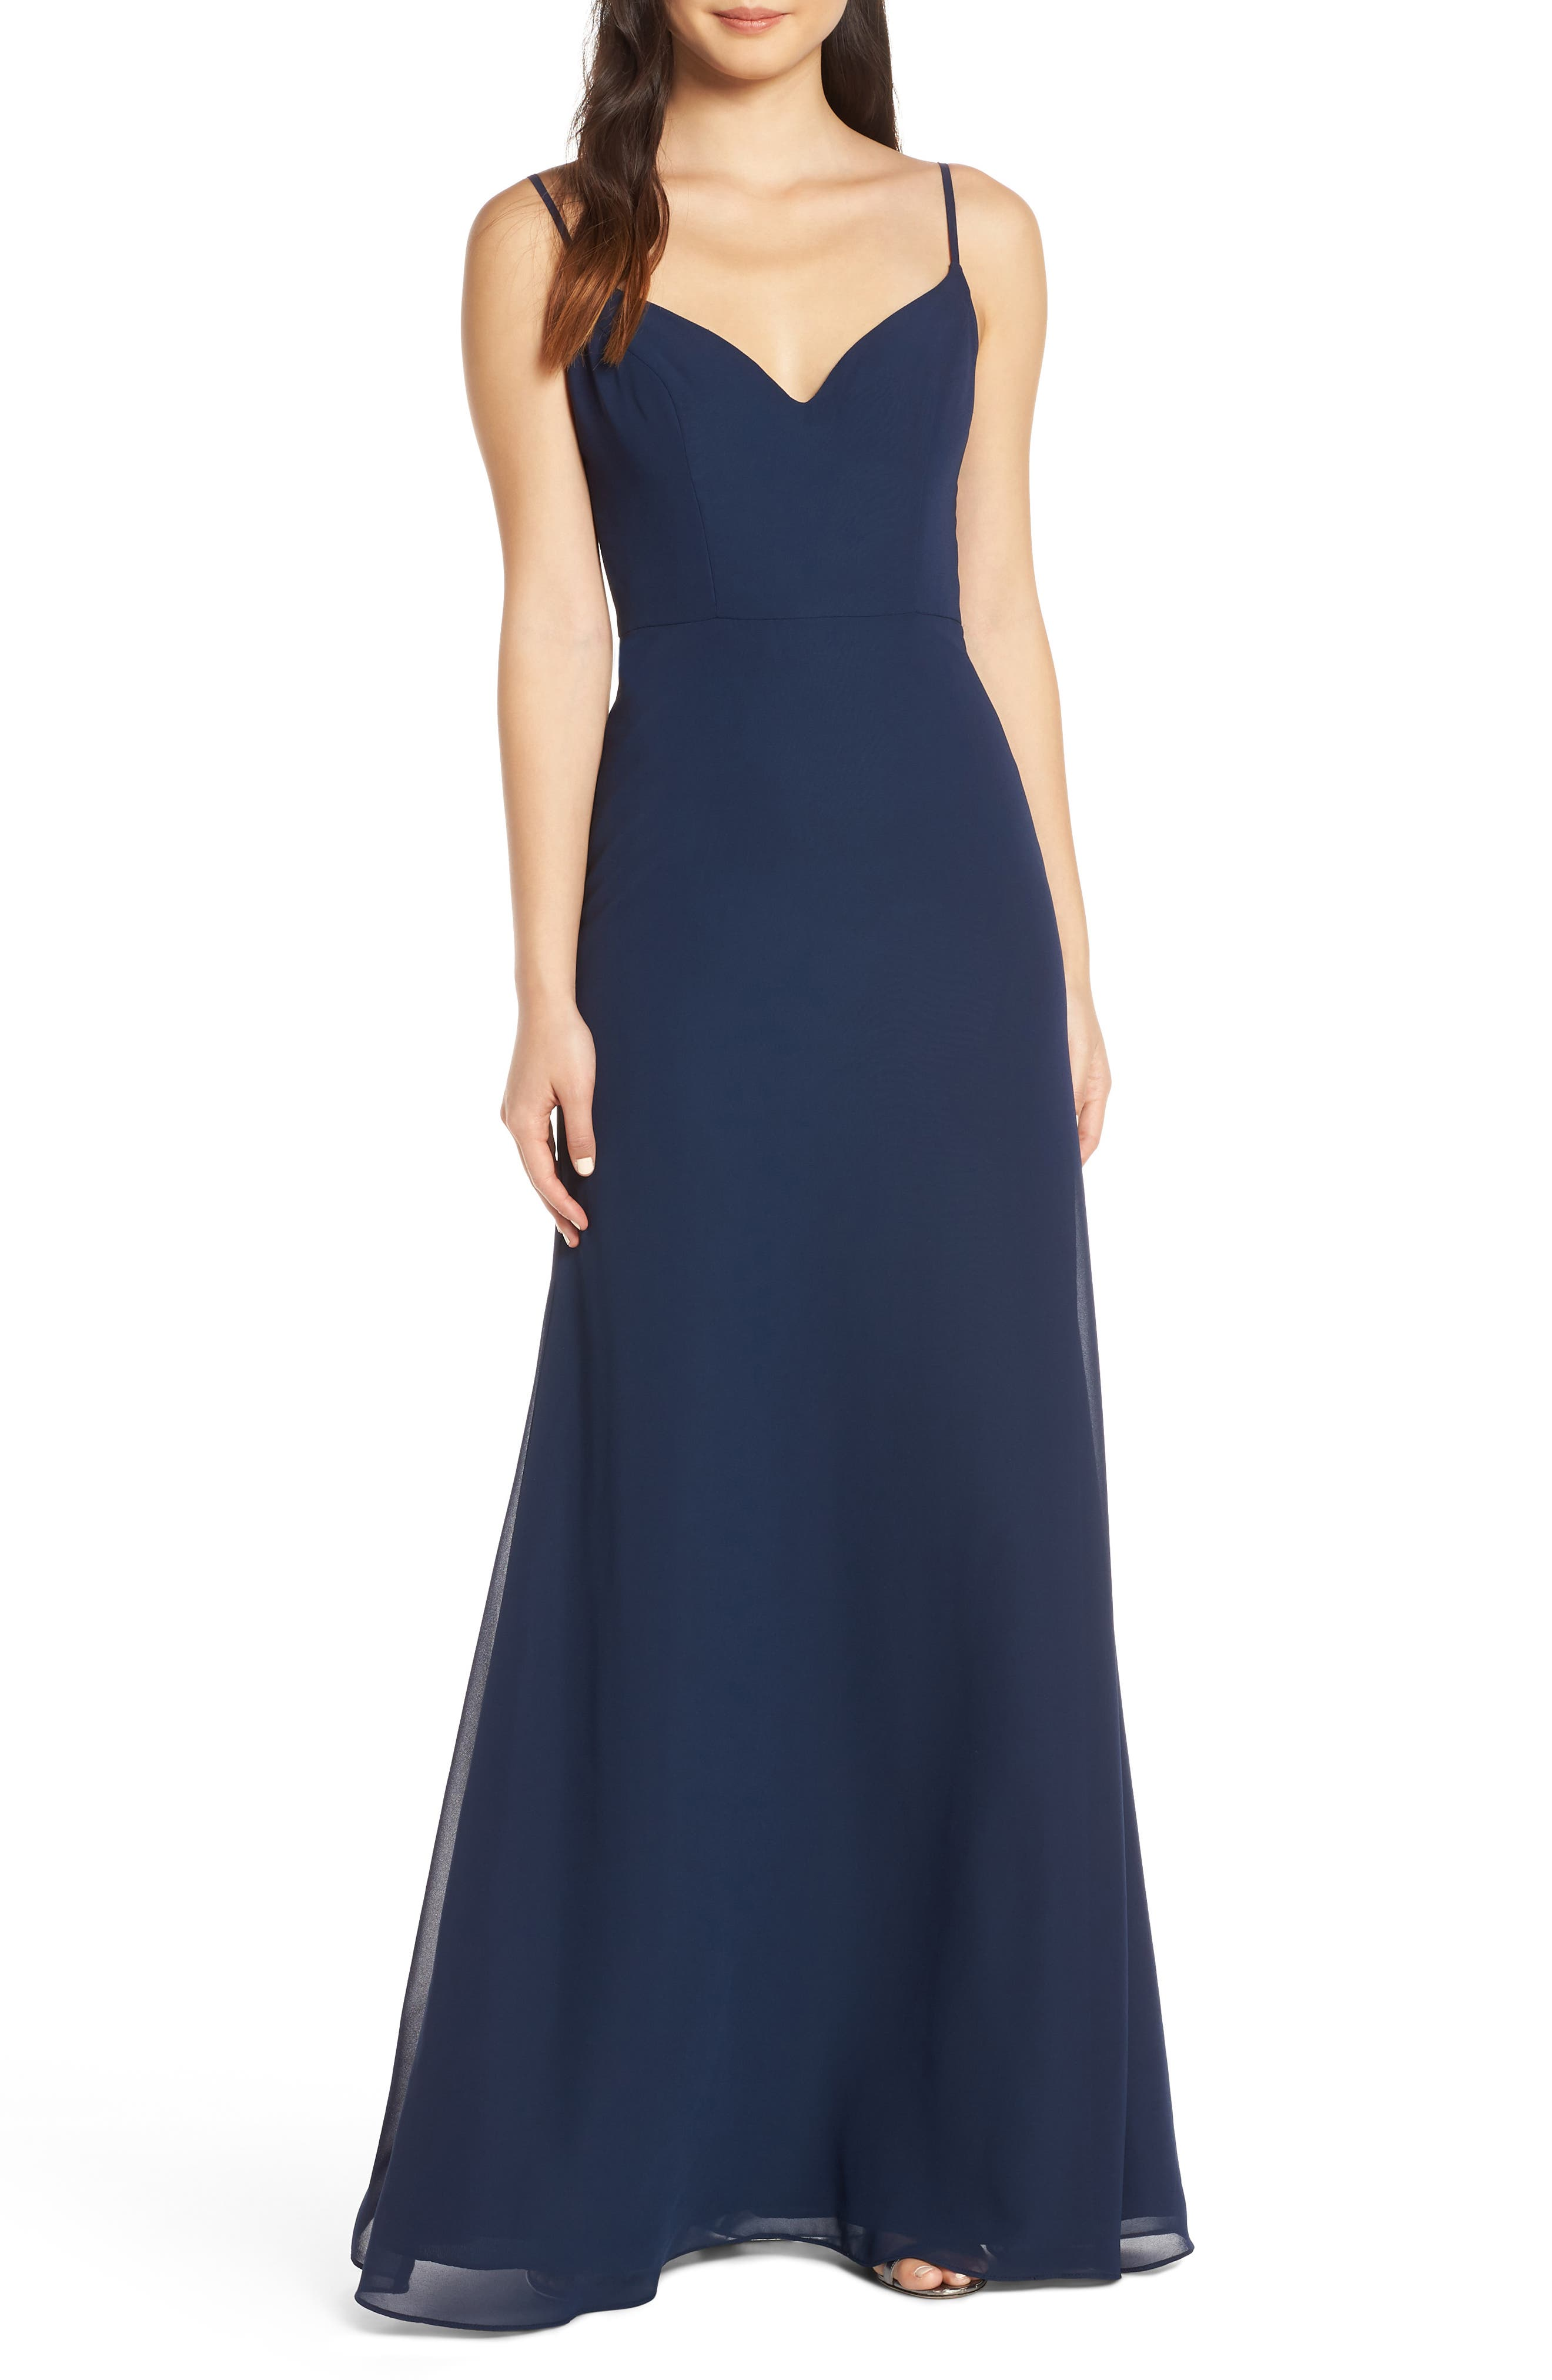 Hayley Paige Occasions V-Neck Chiffon Evening Dress, Blue